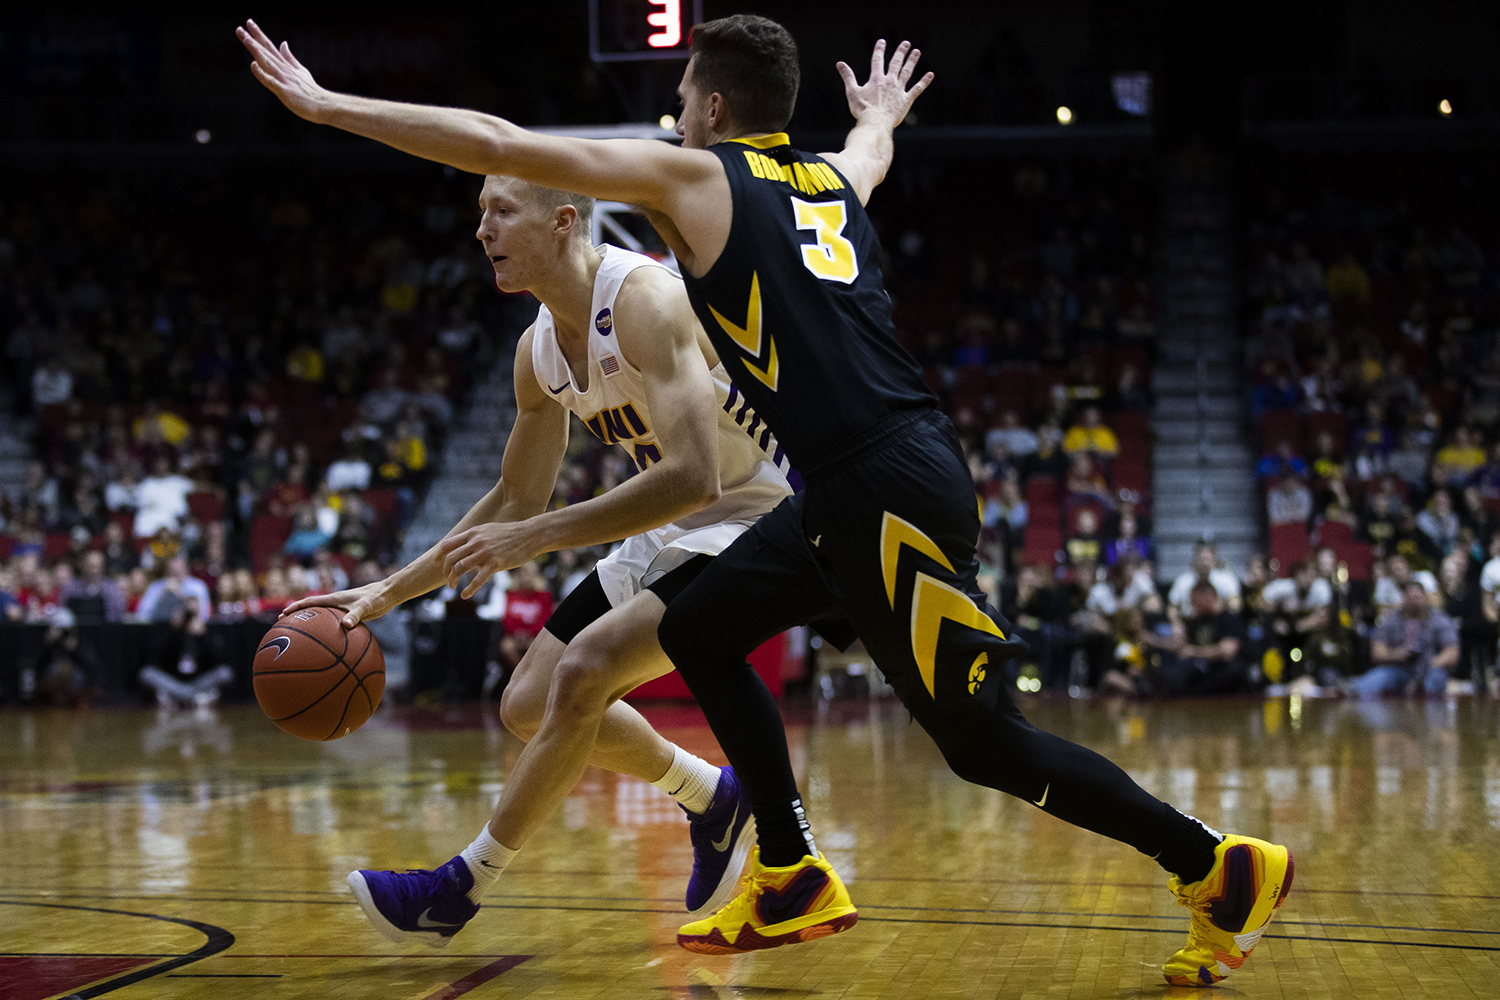 Iowa%27s+Jordan+Bohannon+guards+UNI%27s+A.J.+Green+during+the+Iowa%2FUNI+men%27s+basketball+game+at+Wells+Fargo+Arena+in+Des+Moines+on+Saturday%2C+Dec.+15%2C+2018.+The+Hawkeyes+defeated+the+Panthers%2C+77-54.+